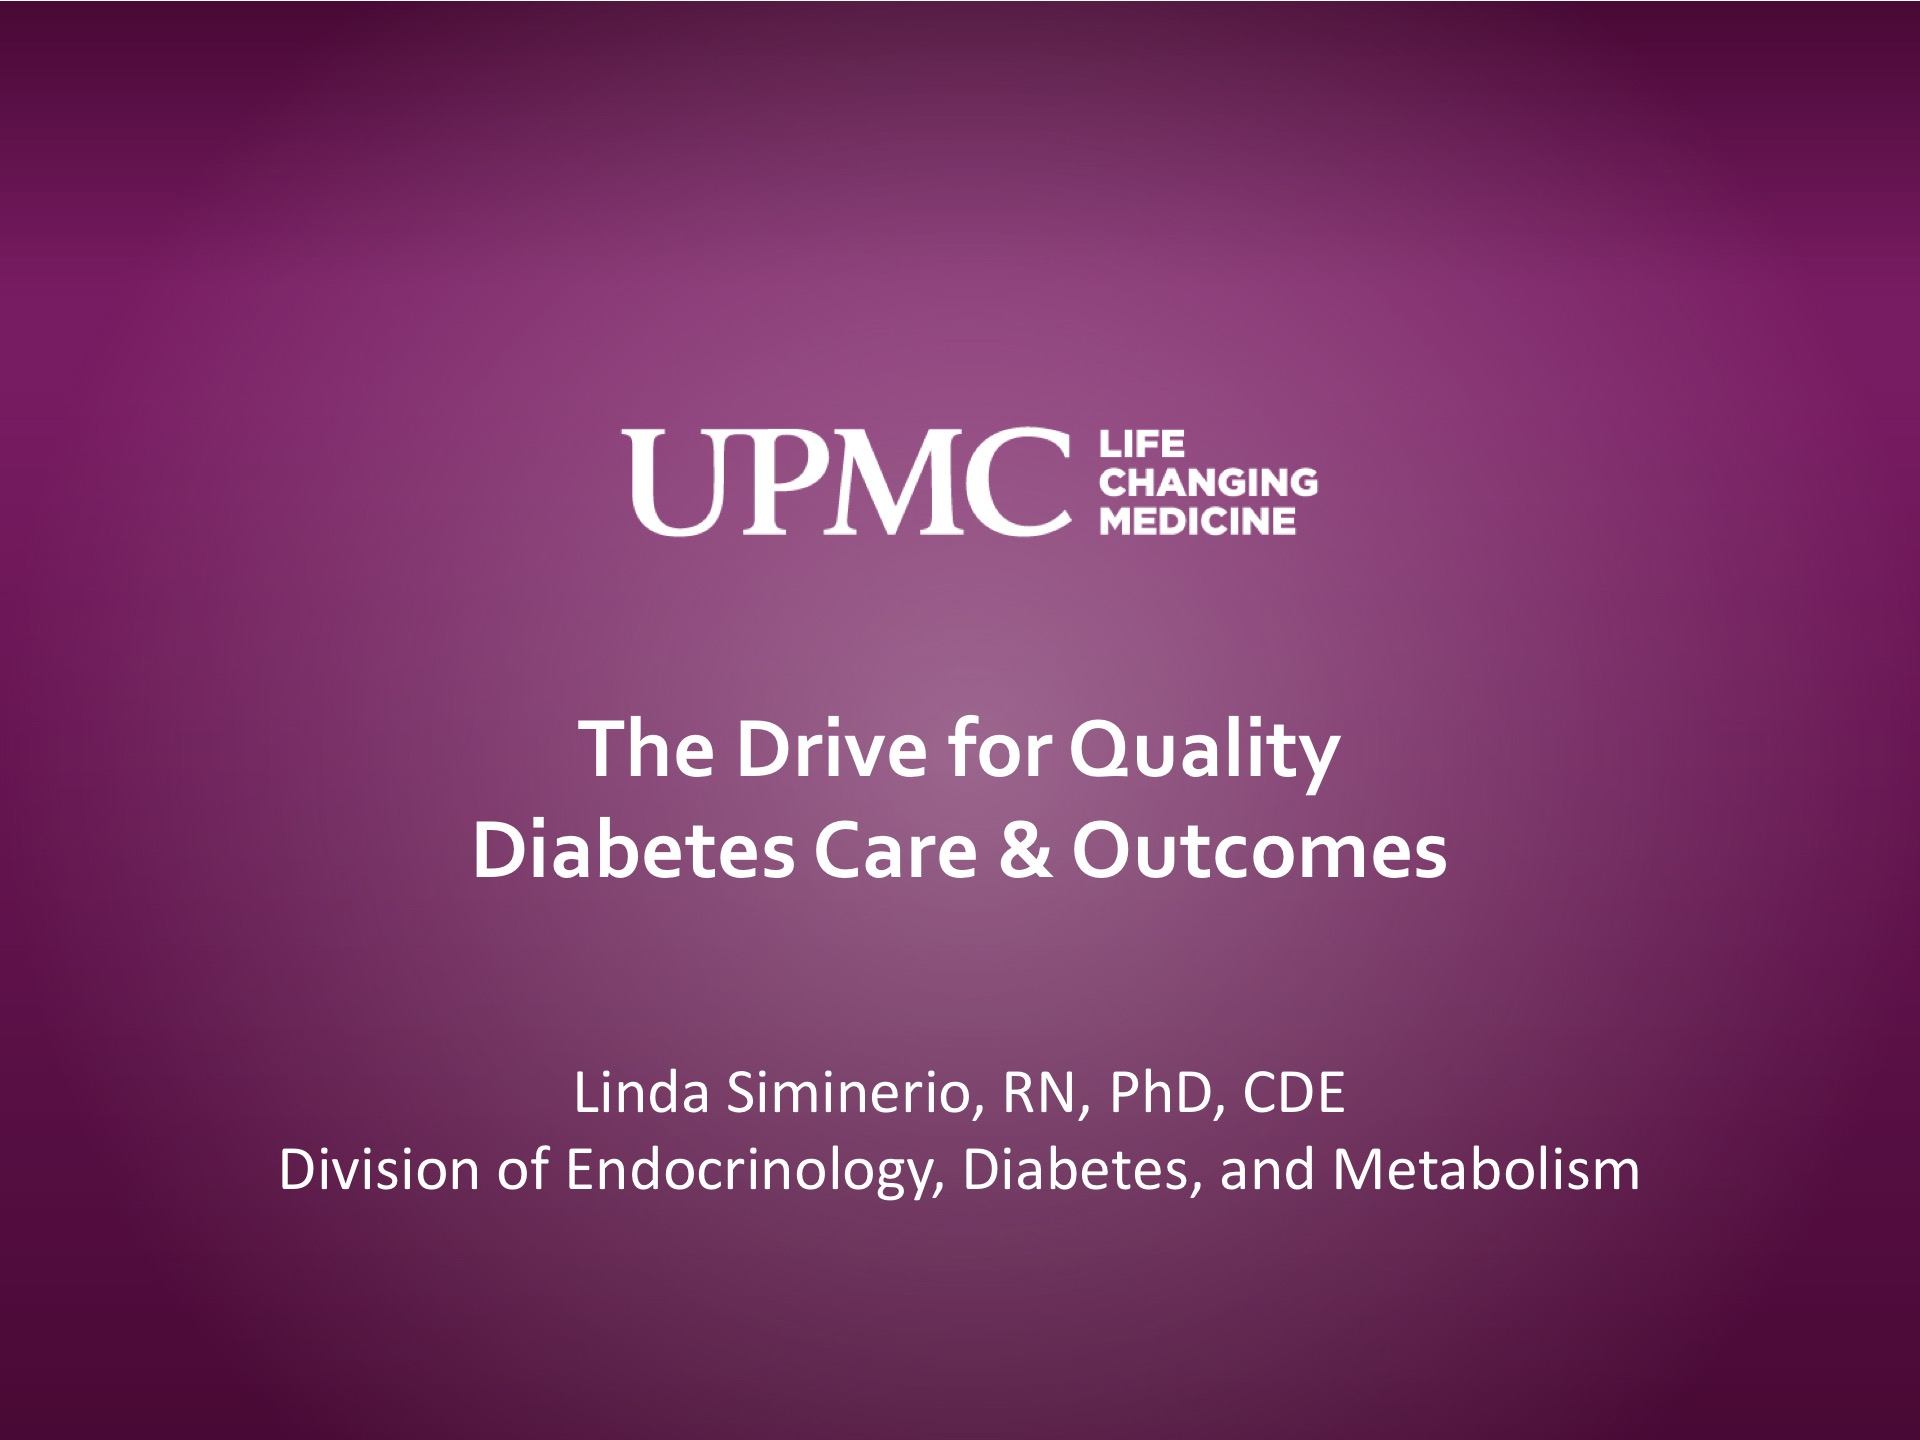 The Drive for Quality Diabetes Care & Outcomes | UPMC